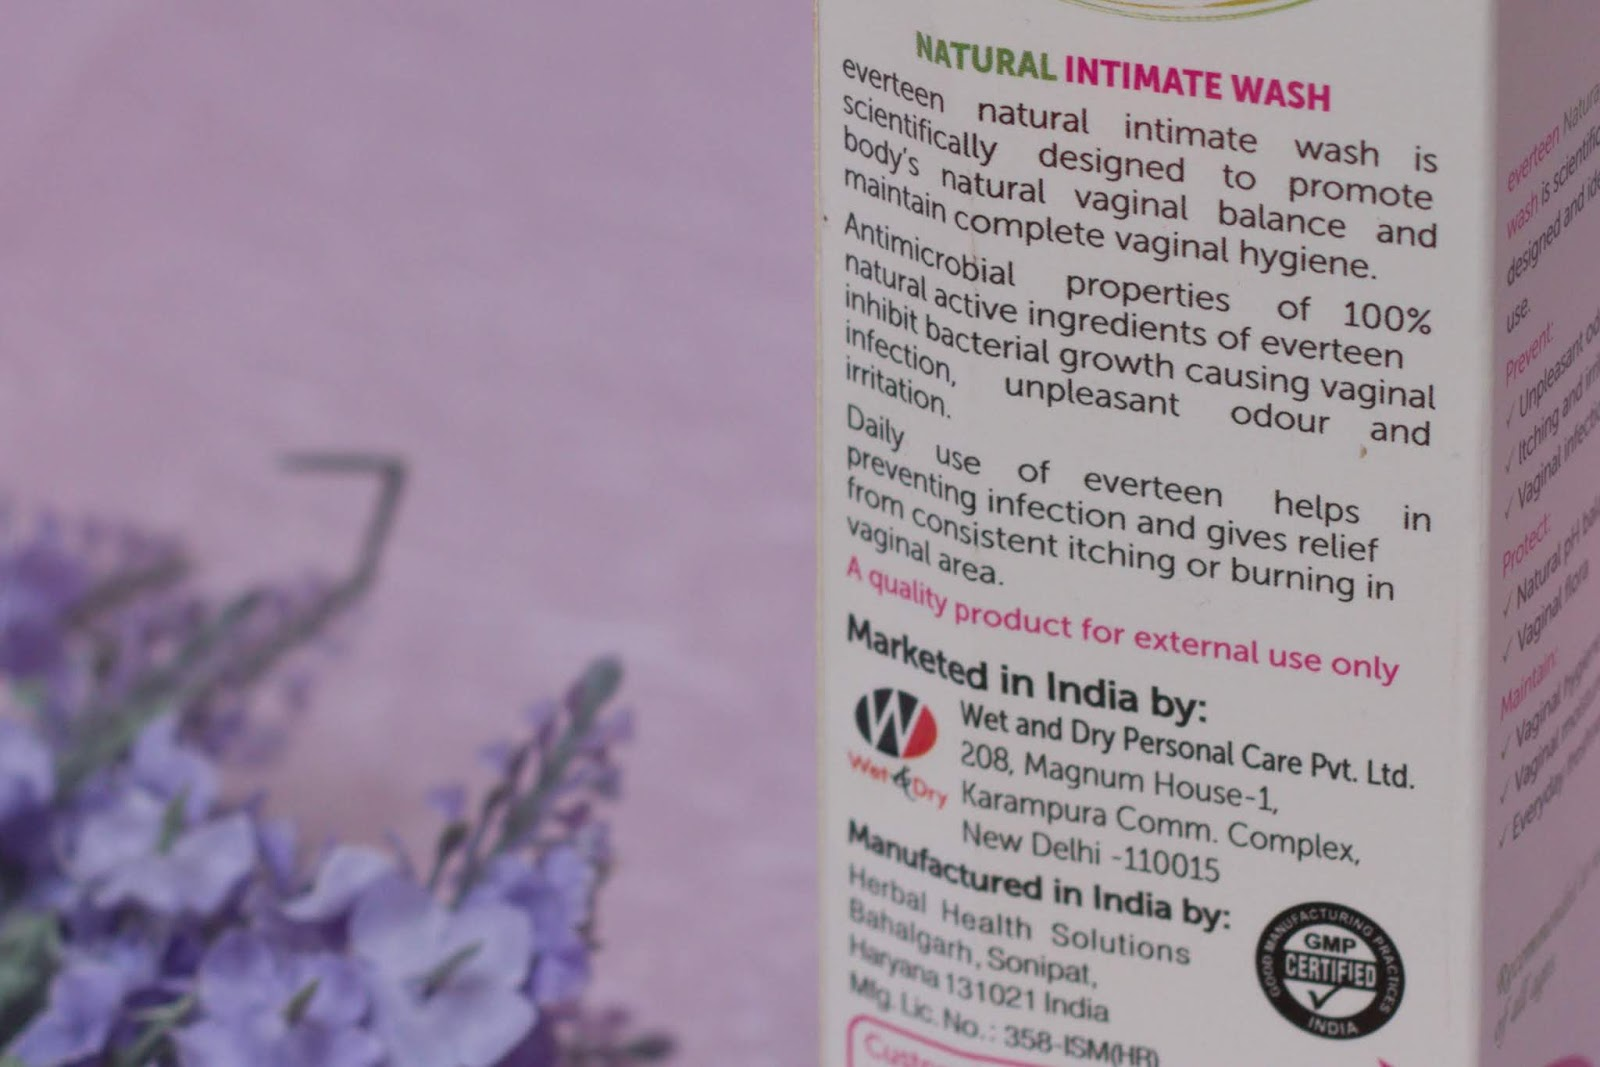 Everteen Natural Intimate Wash Company